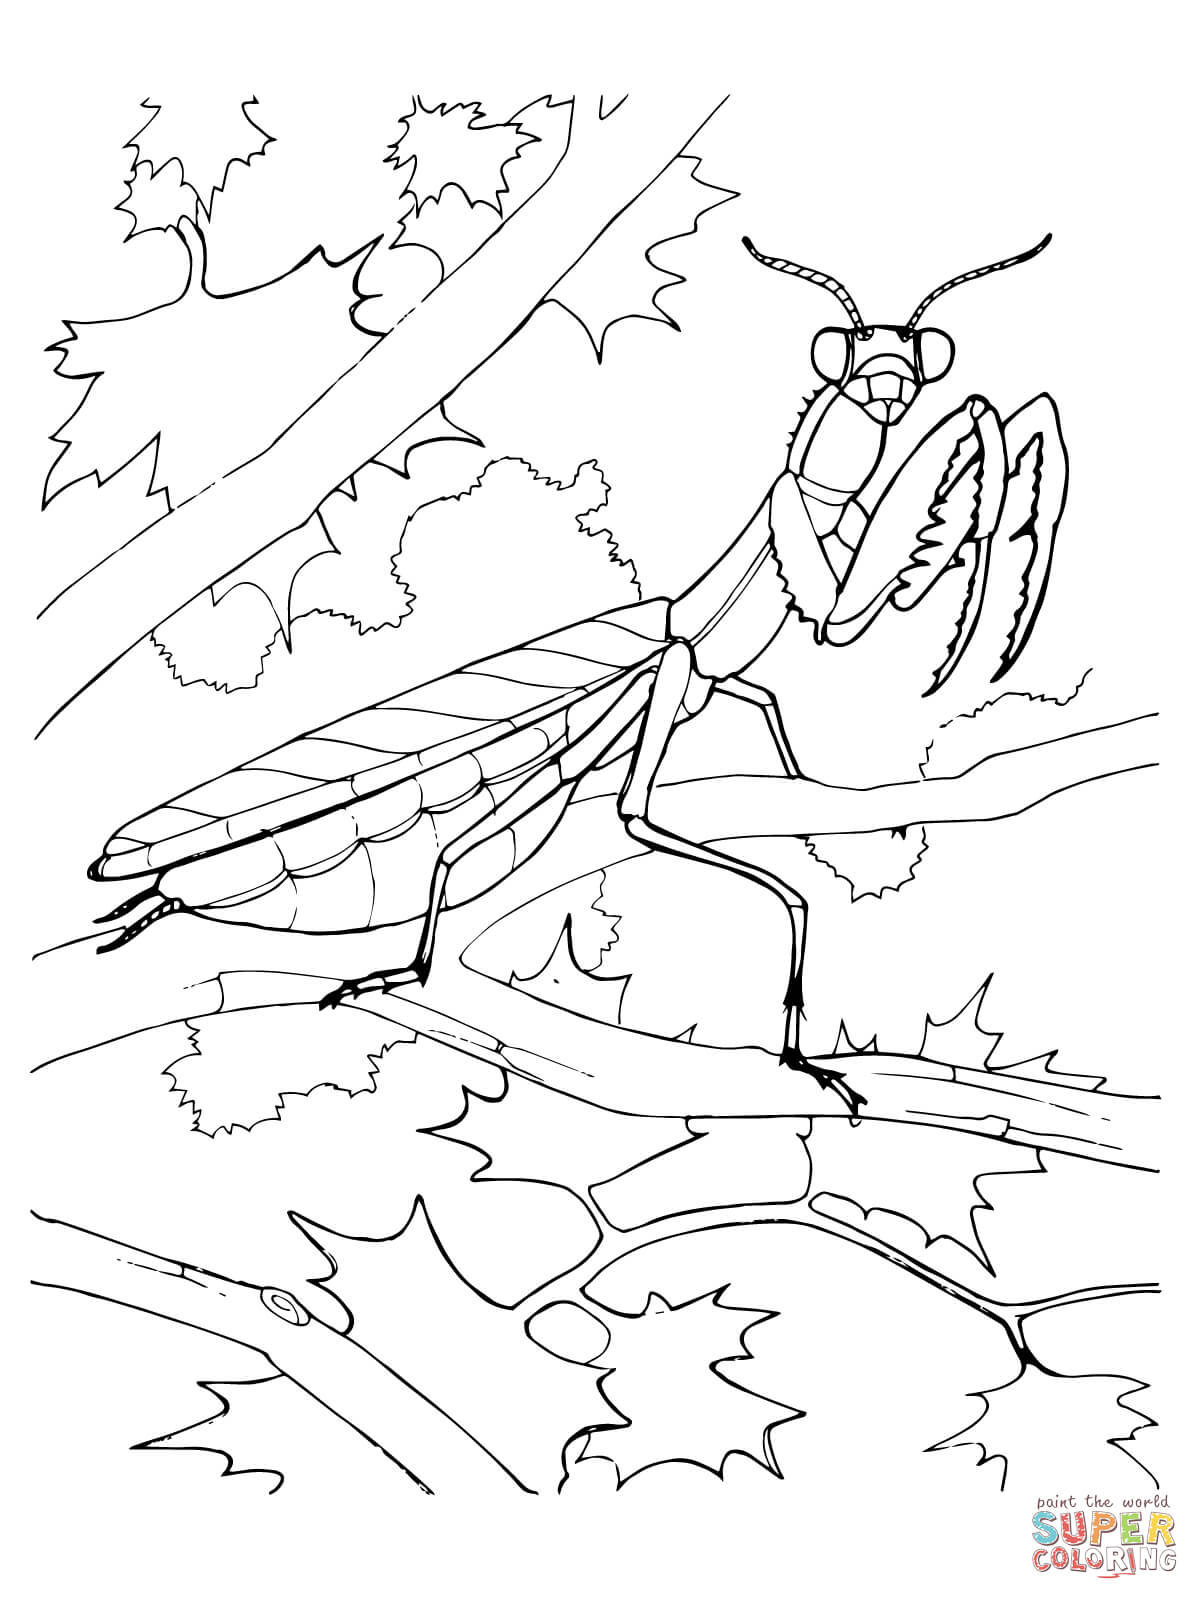 Praying Mantis coloring #17, Download drawings